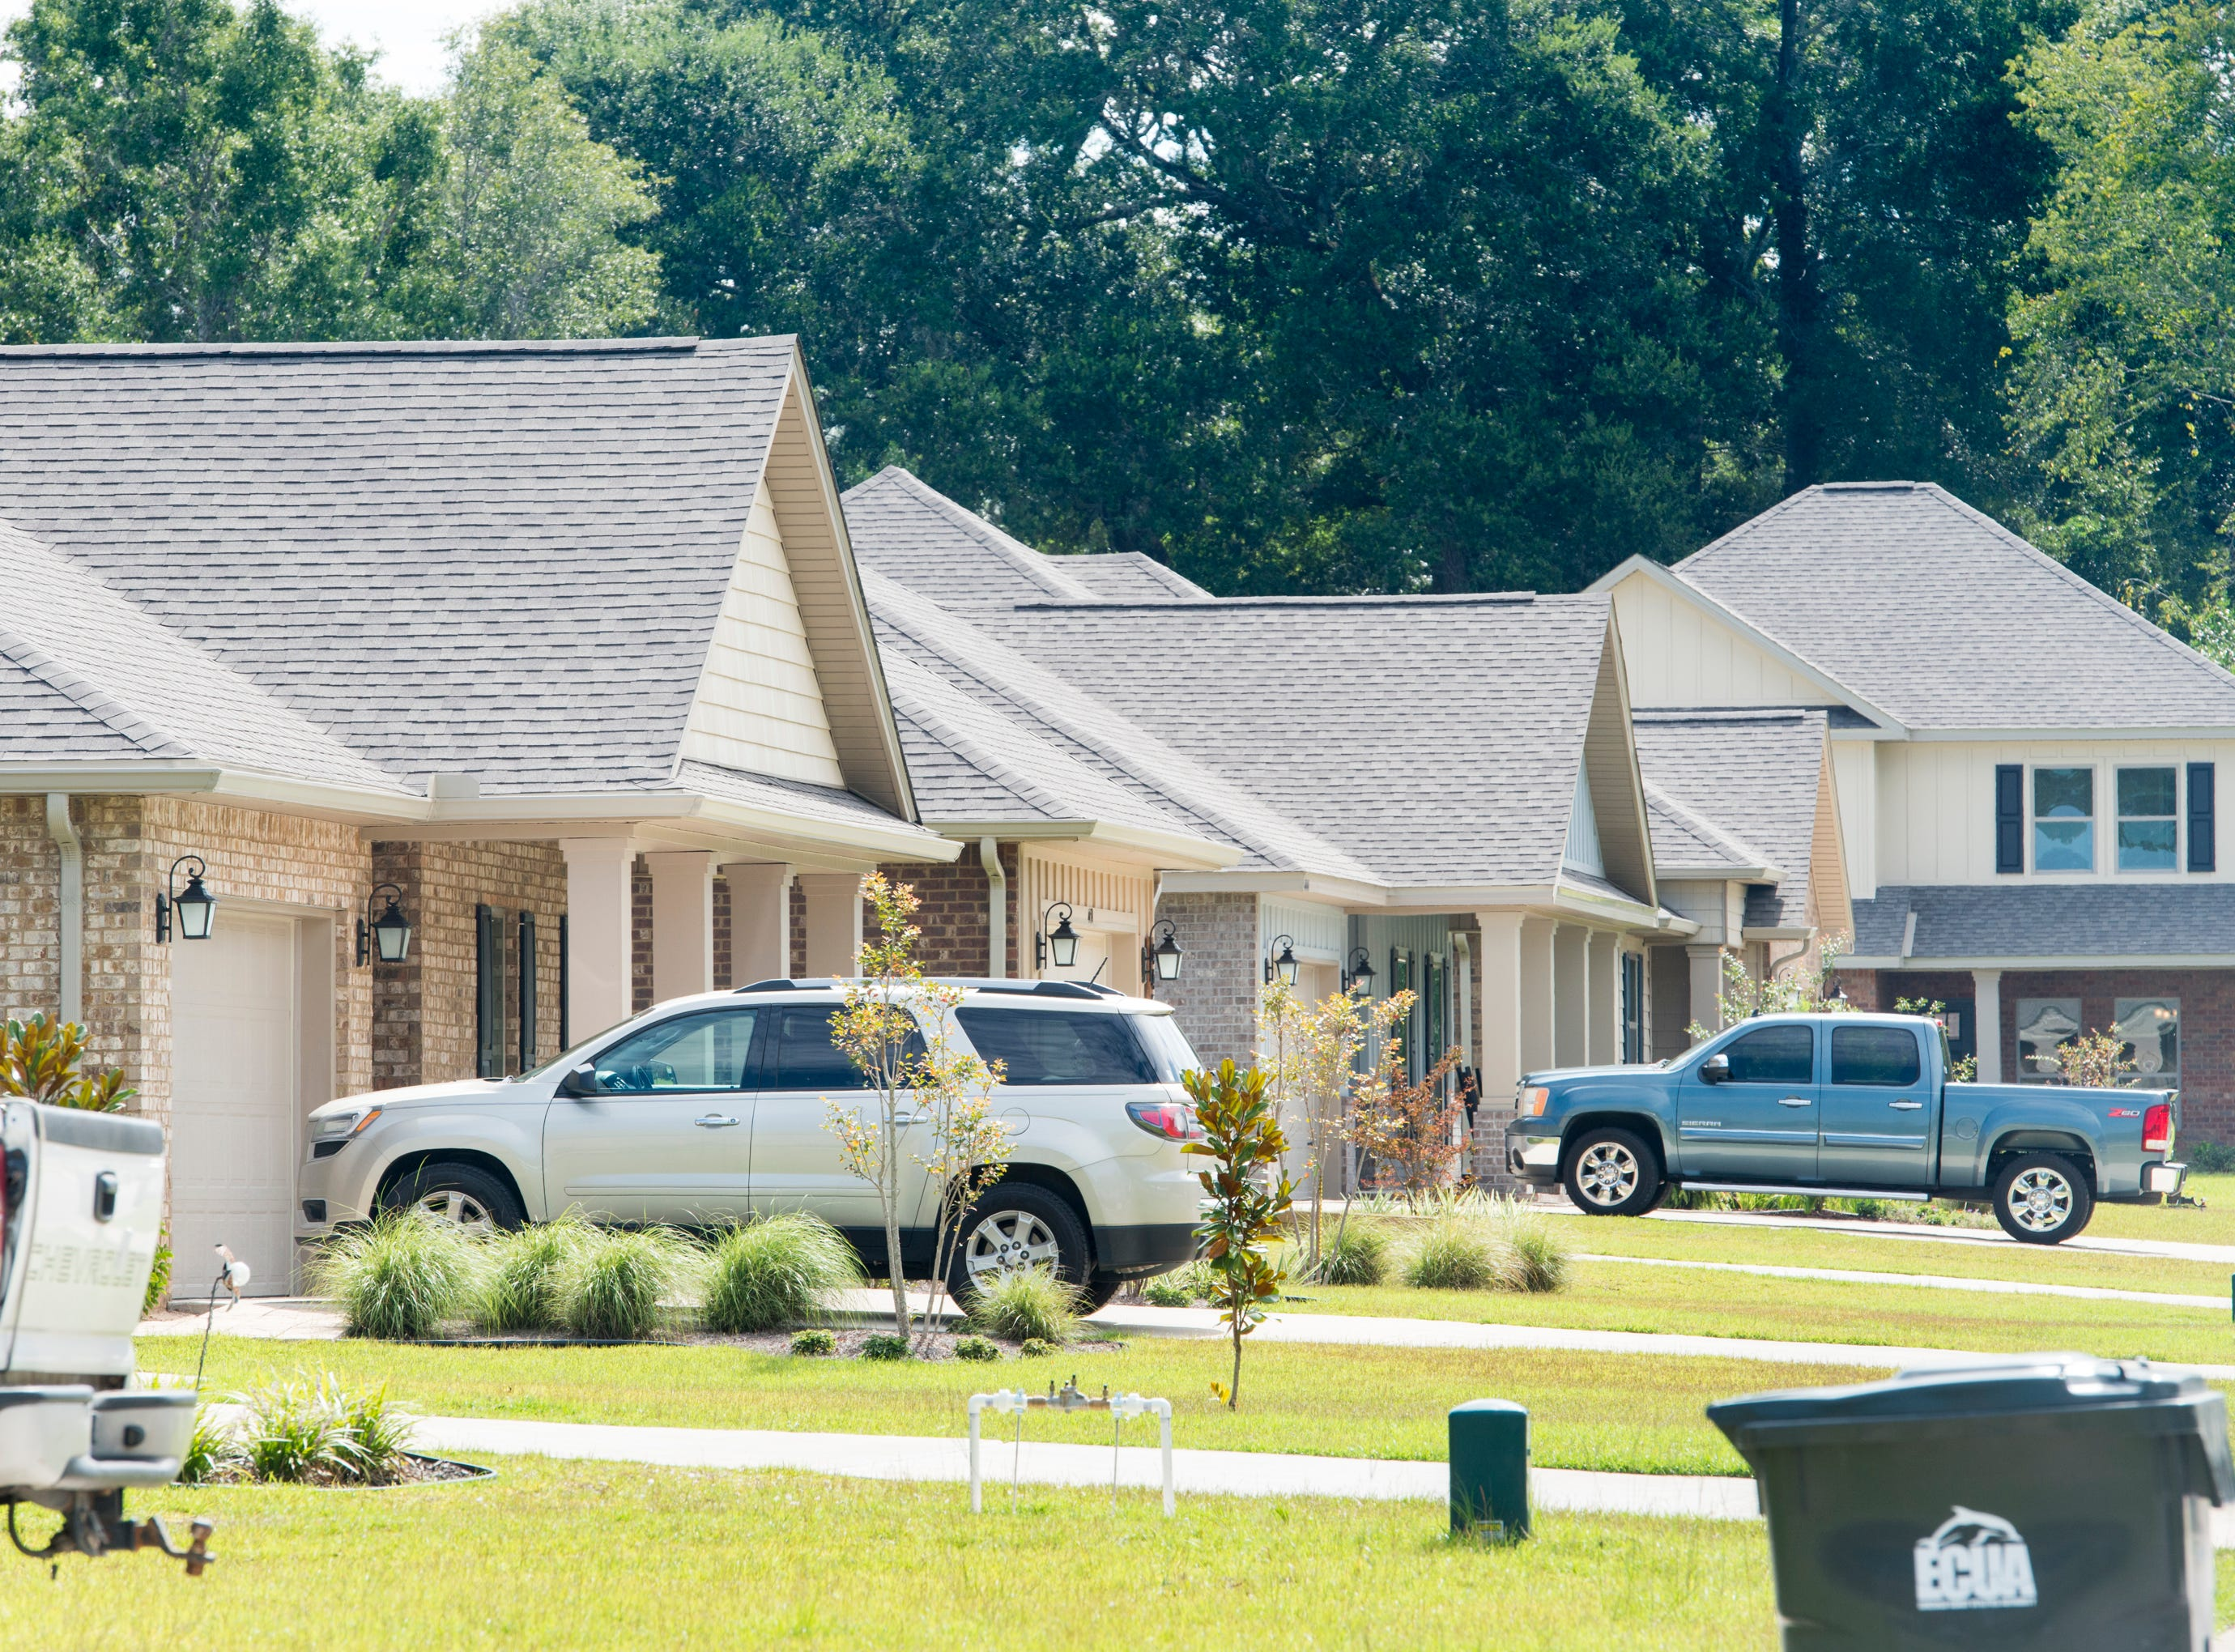 The new subdivision of Heritage Estates in Pace's District 1 on Tuesday, August 7, 2018.